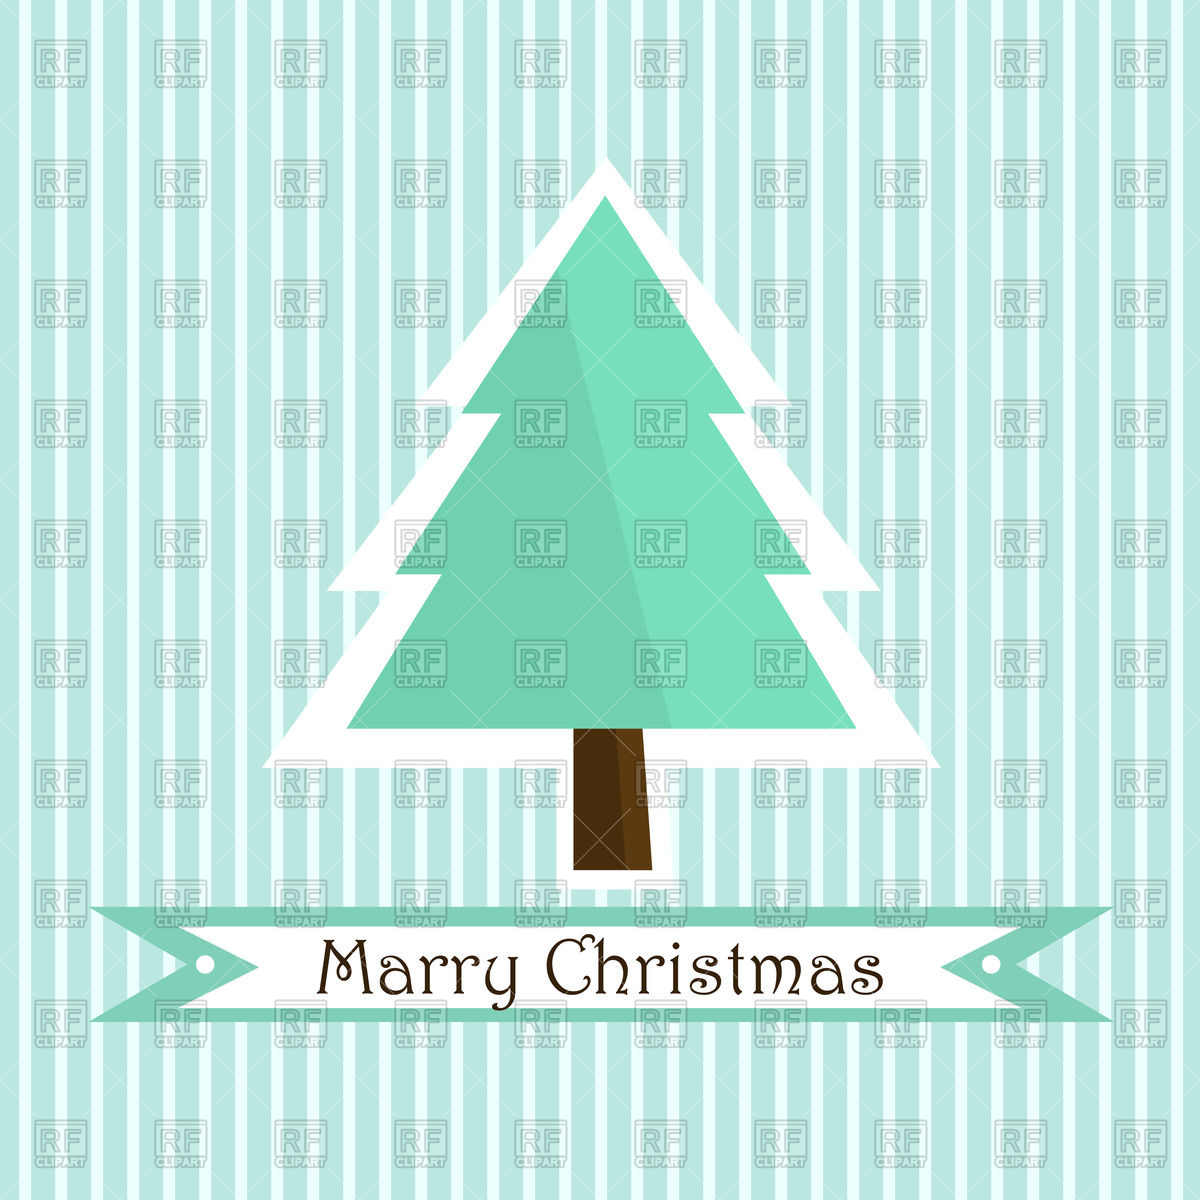 1200x1200 Simple Christmas Tree And Banner On Striped Background Vector